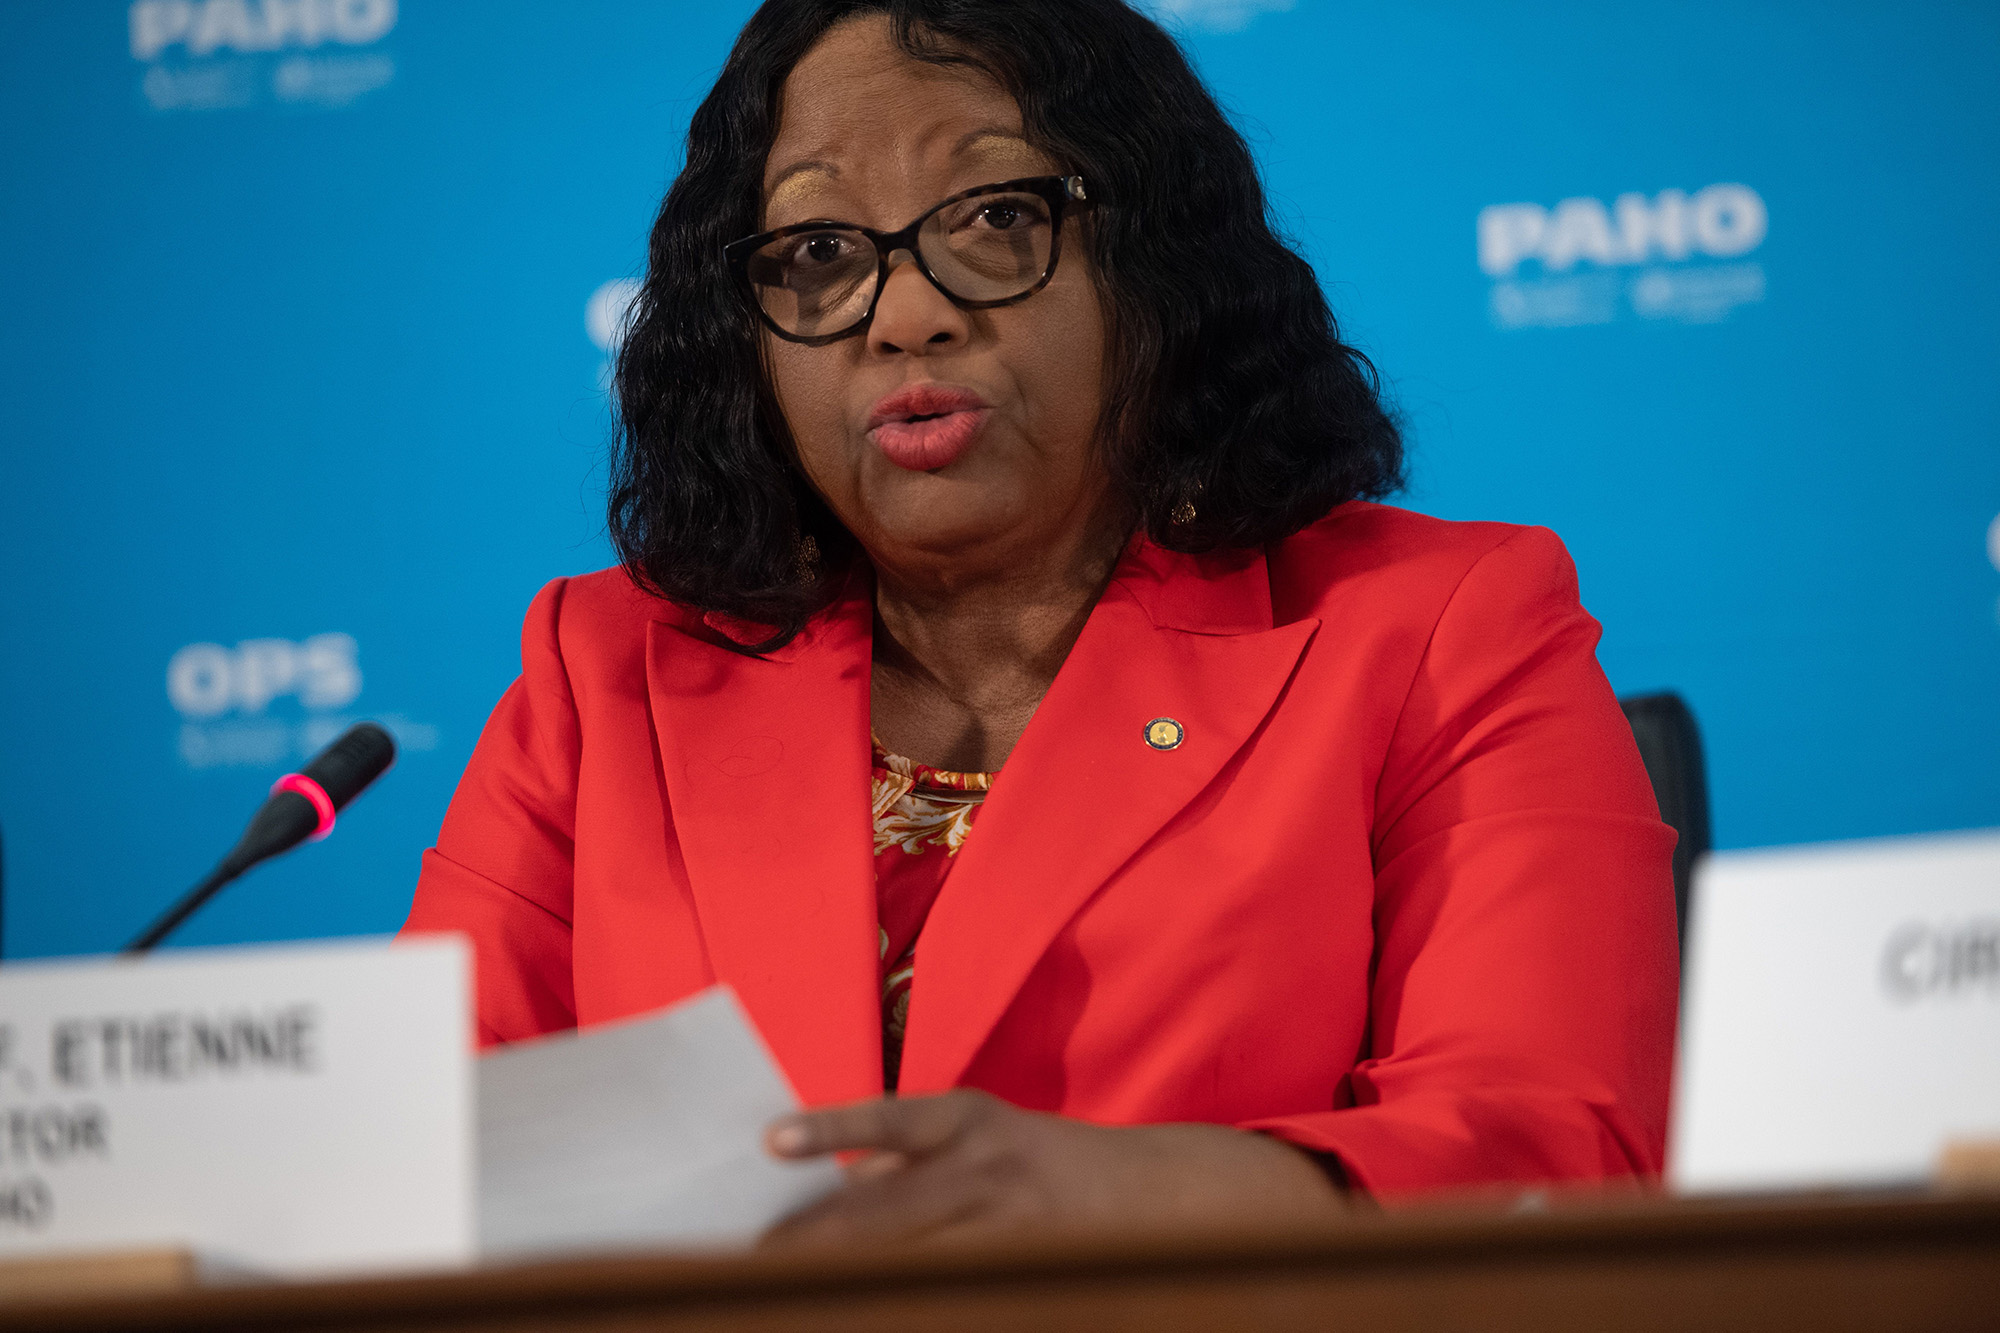 Dr. Carissa Etienne, Director of the Pan American Health Organization (PAHO) and World Health Organization (WHO) Regional Director for the Americas, speaks about the coronavirus pandemic during a press briefing at PAHO Headquarters in Washington DC, on March 6.